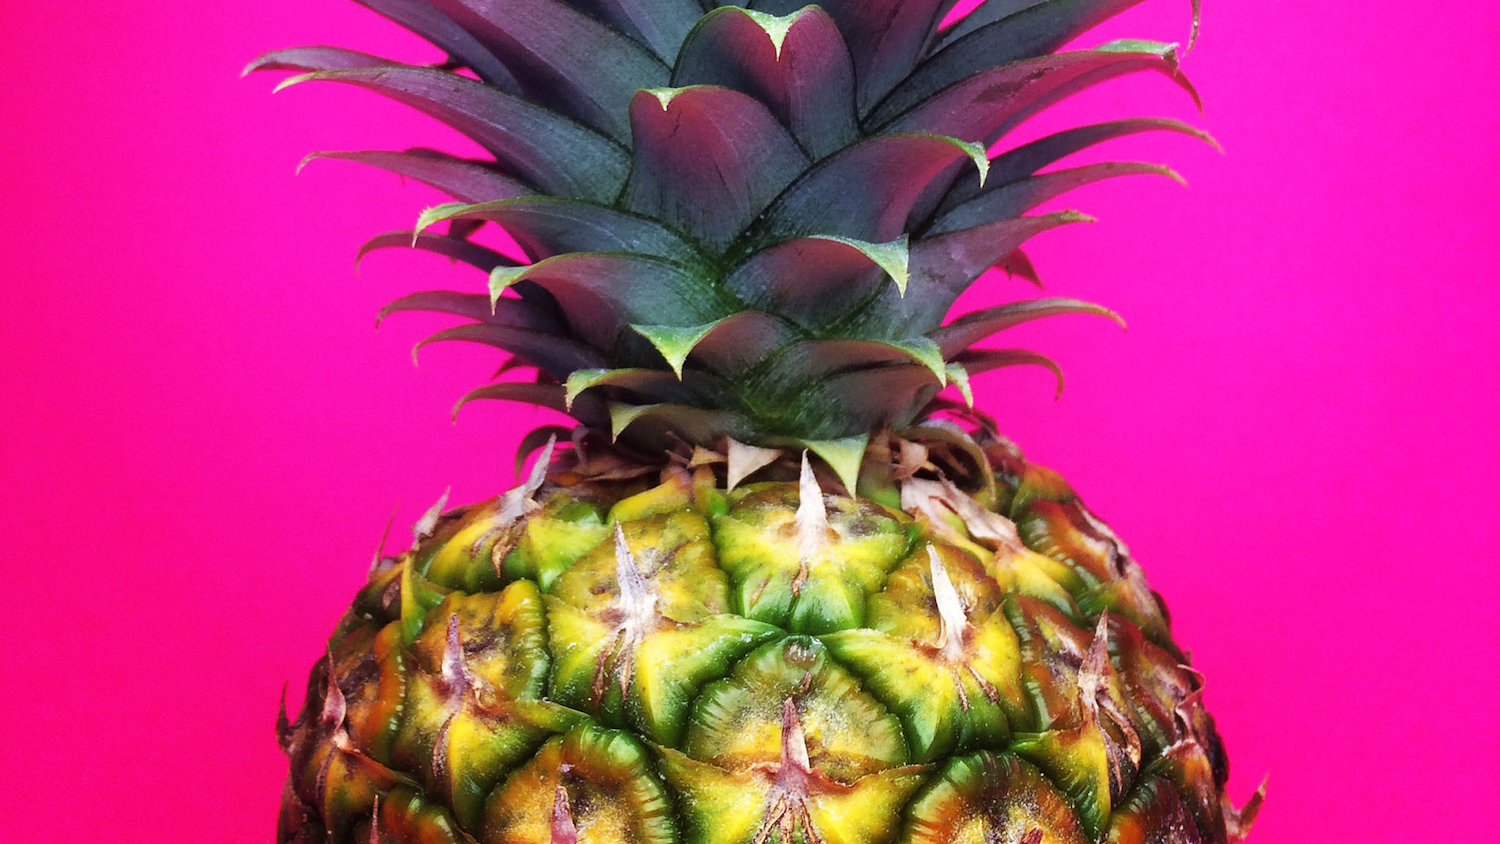 Growing a Single Pineapple Can Make You Internet Famous